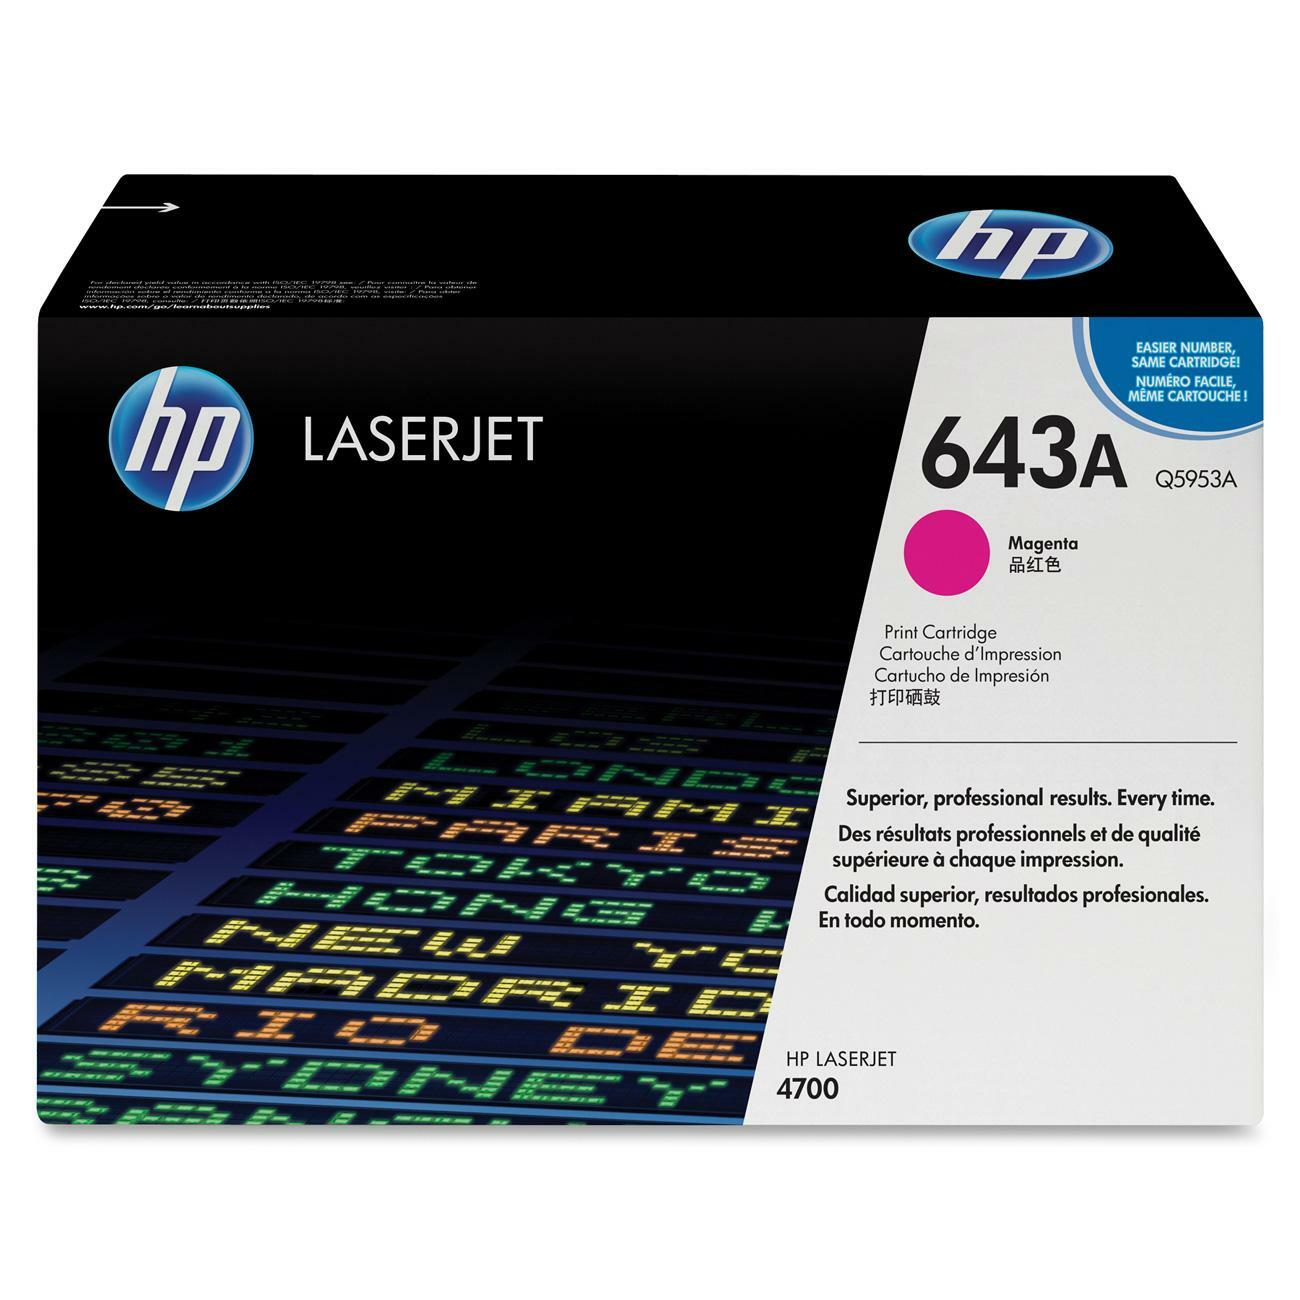 HP 643A Toner Cartridge